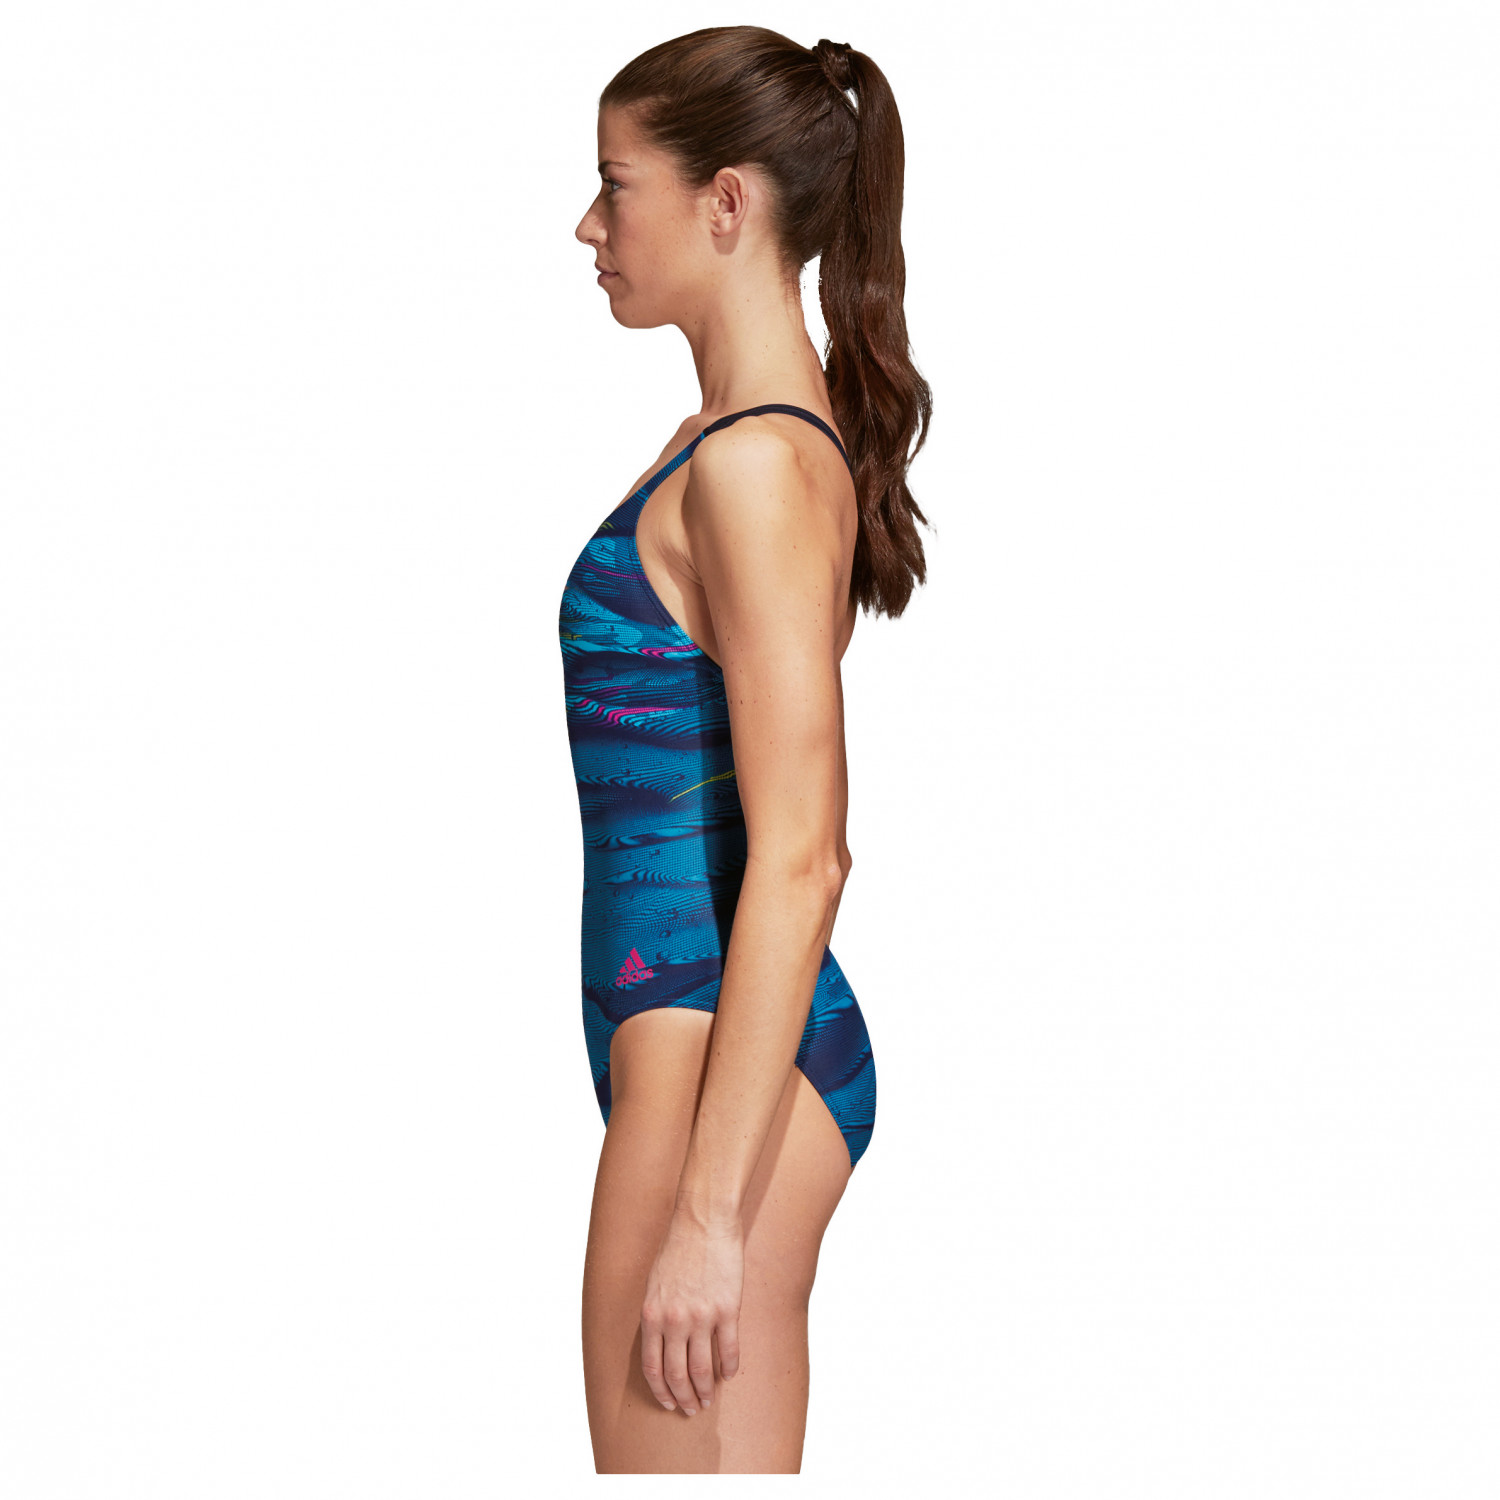 Adidas Fitness Training Suit Parley Commit Swimsuit